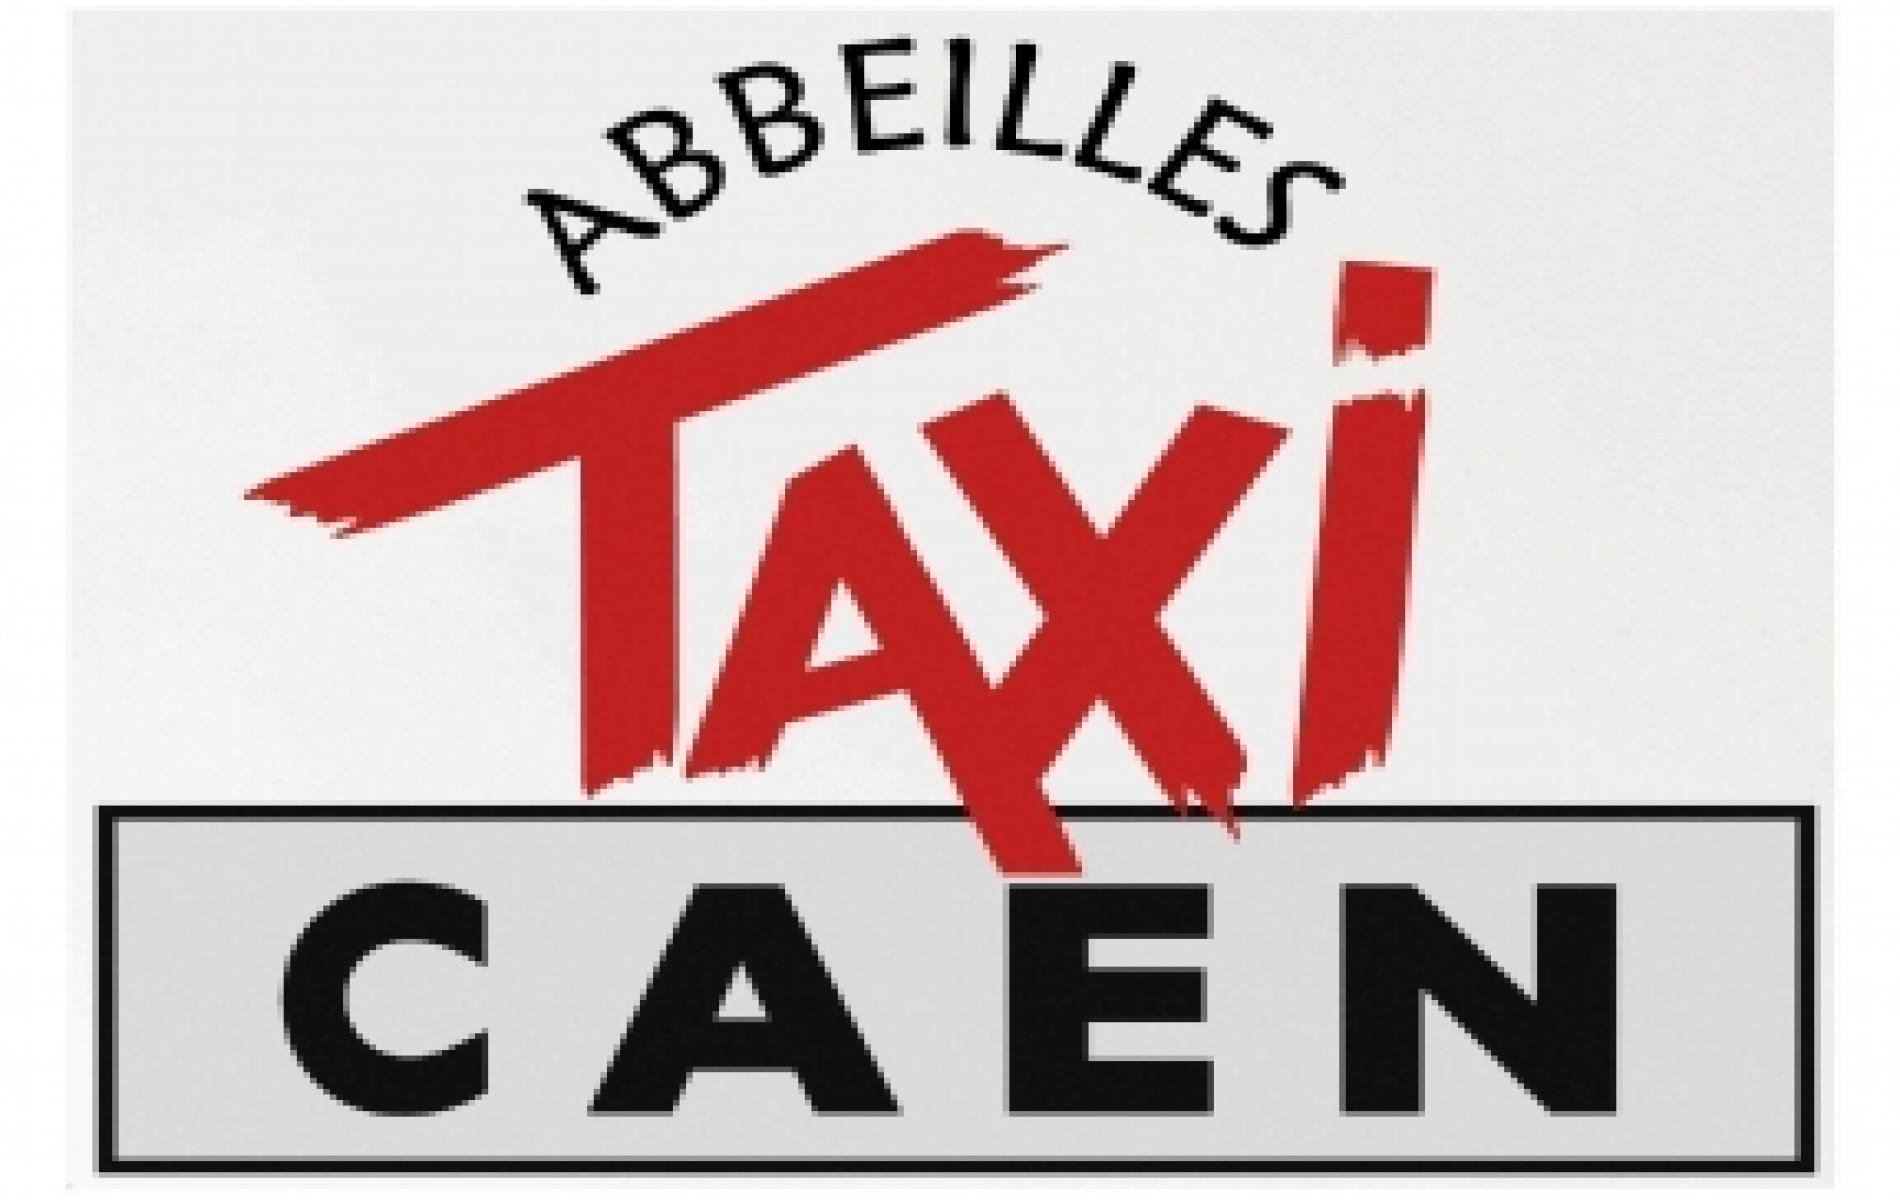 RESERVATION DE TAXIS